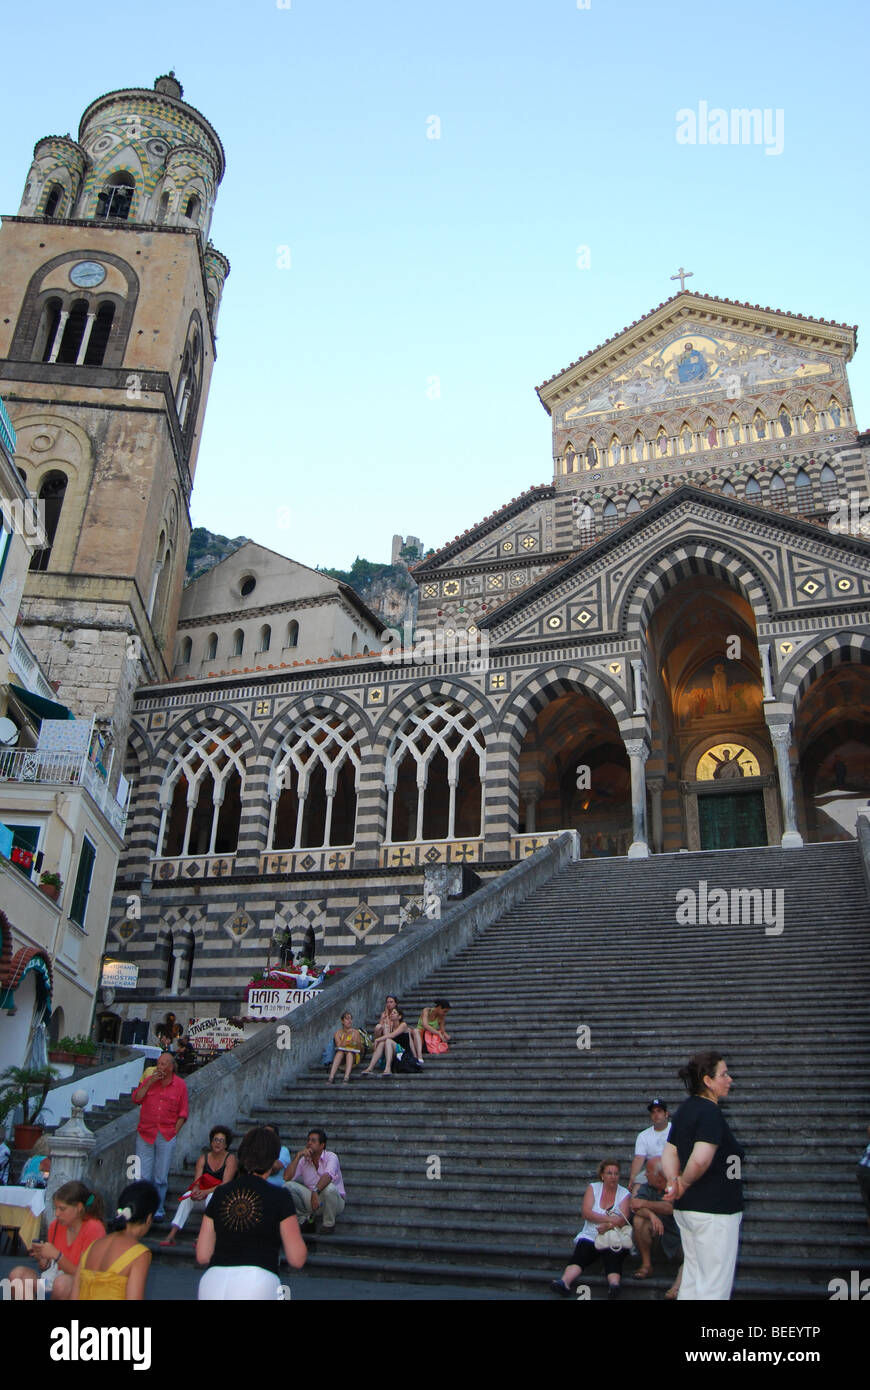 Amalfi town, Italy, 9th century cathedral - Stock Image